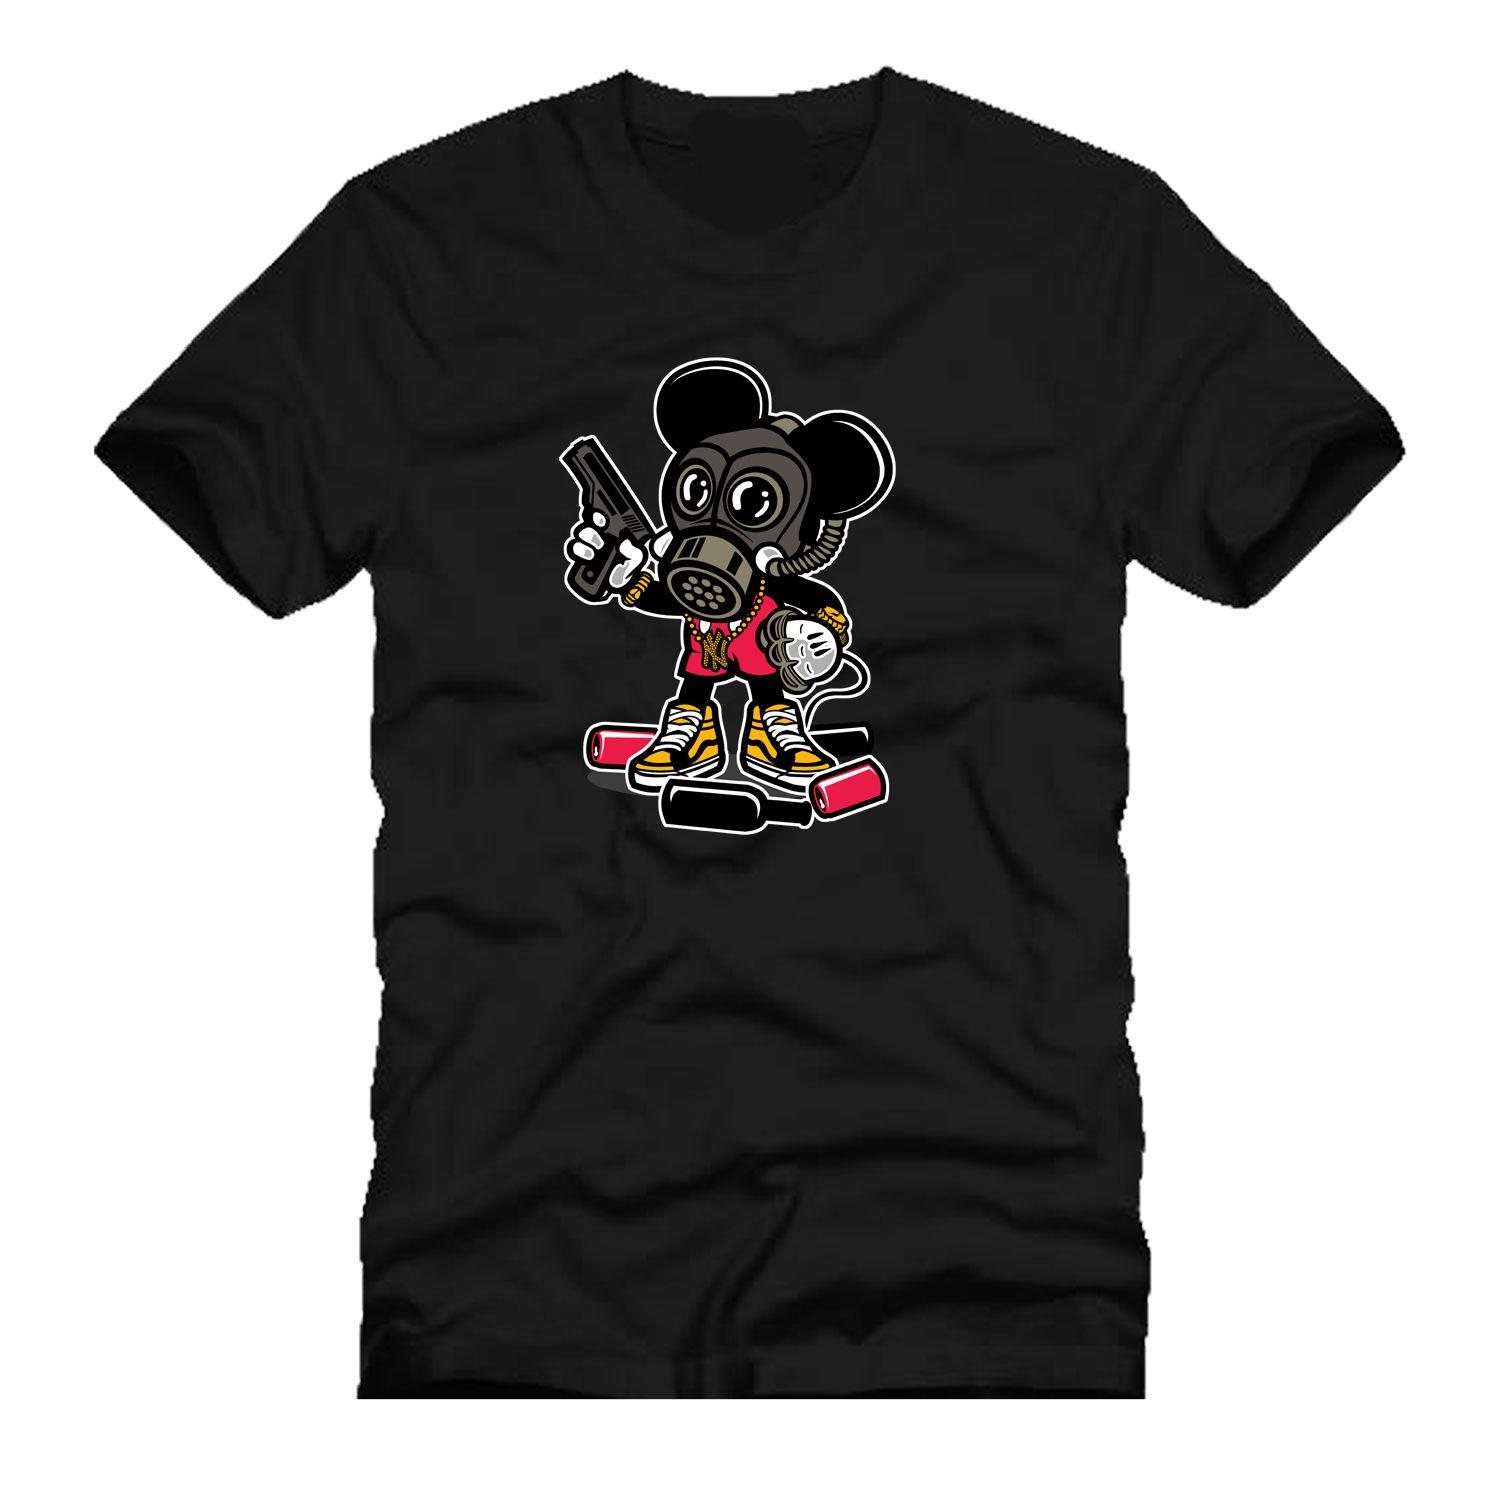 Gangsta Mouse Gas Knuckle Guns Soldi Urban Parody Mashup Dtg Mens T Shirt Tees New Fashion Casual Cotone Short - Sleeve